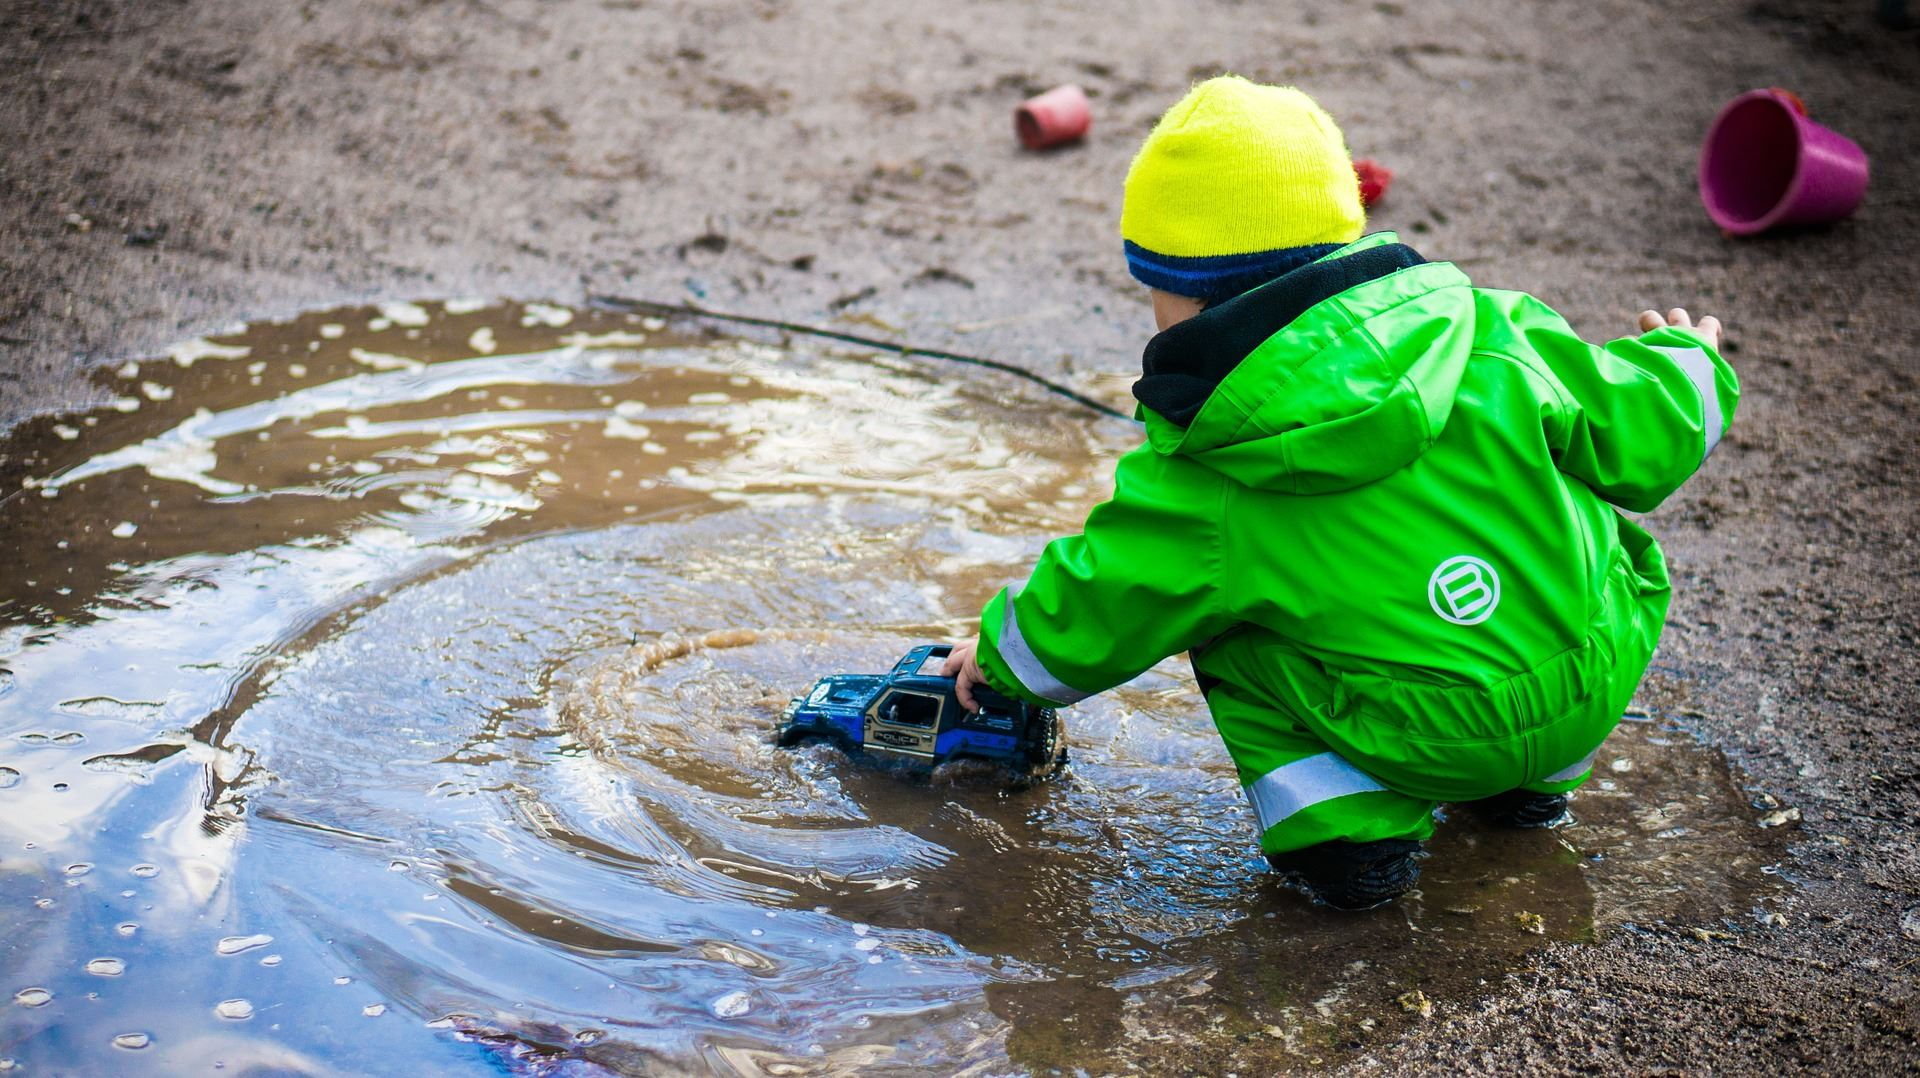 young boy wearing a rain suit and playing with a blue truck in a large puddle